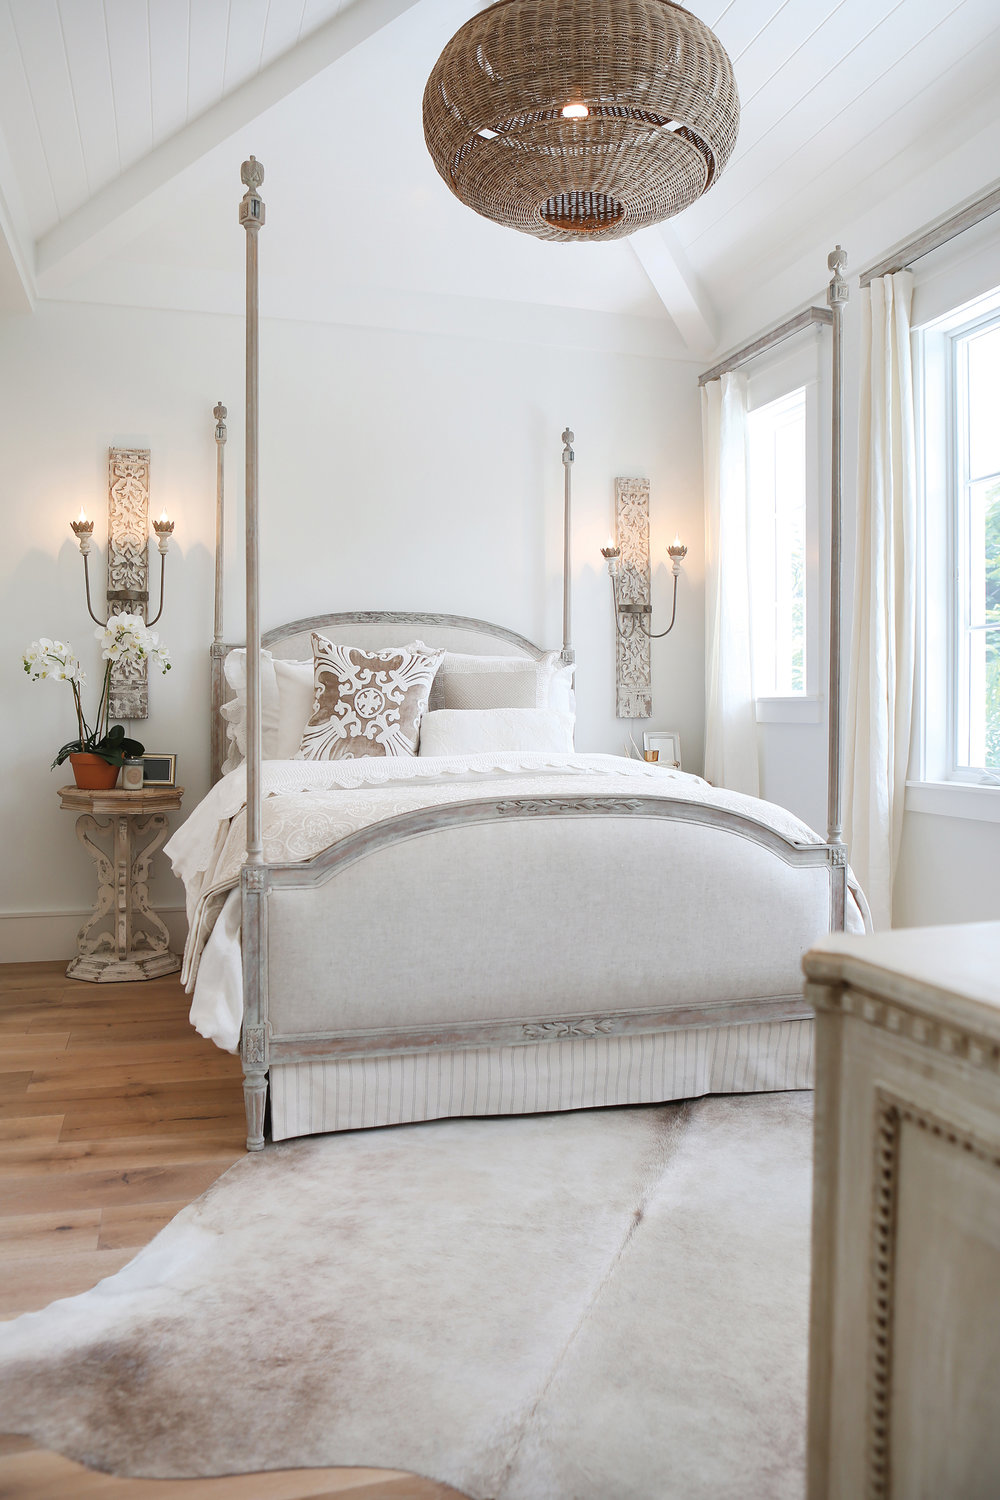 A guest bedroom provides a cozy space for family and friends. While many four-poster beds can feel heavy, Williams uses one with delicate posts in keeping with the airy feel of the room. Dramatic sconces flank the bed and draw the eye up to the ceiling details and the woven light fixture above. A hide rug anchors the room.